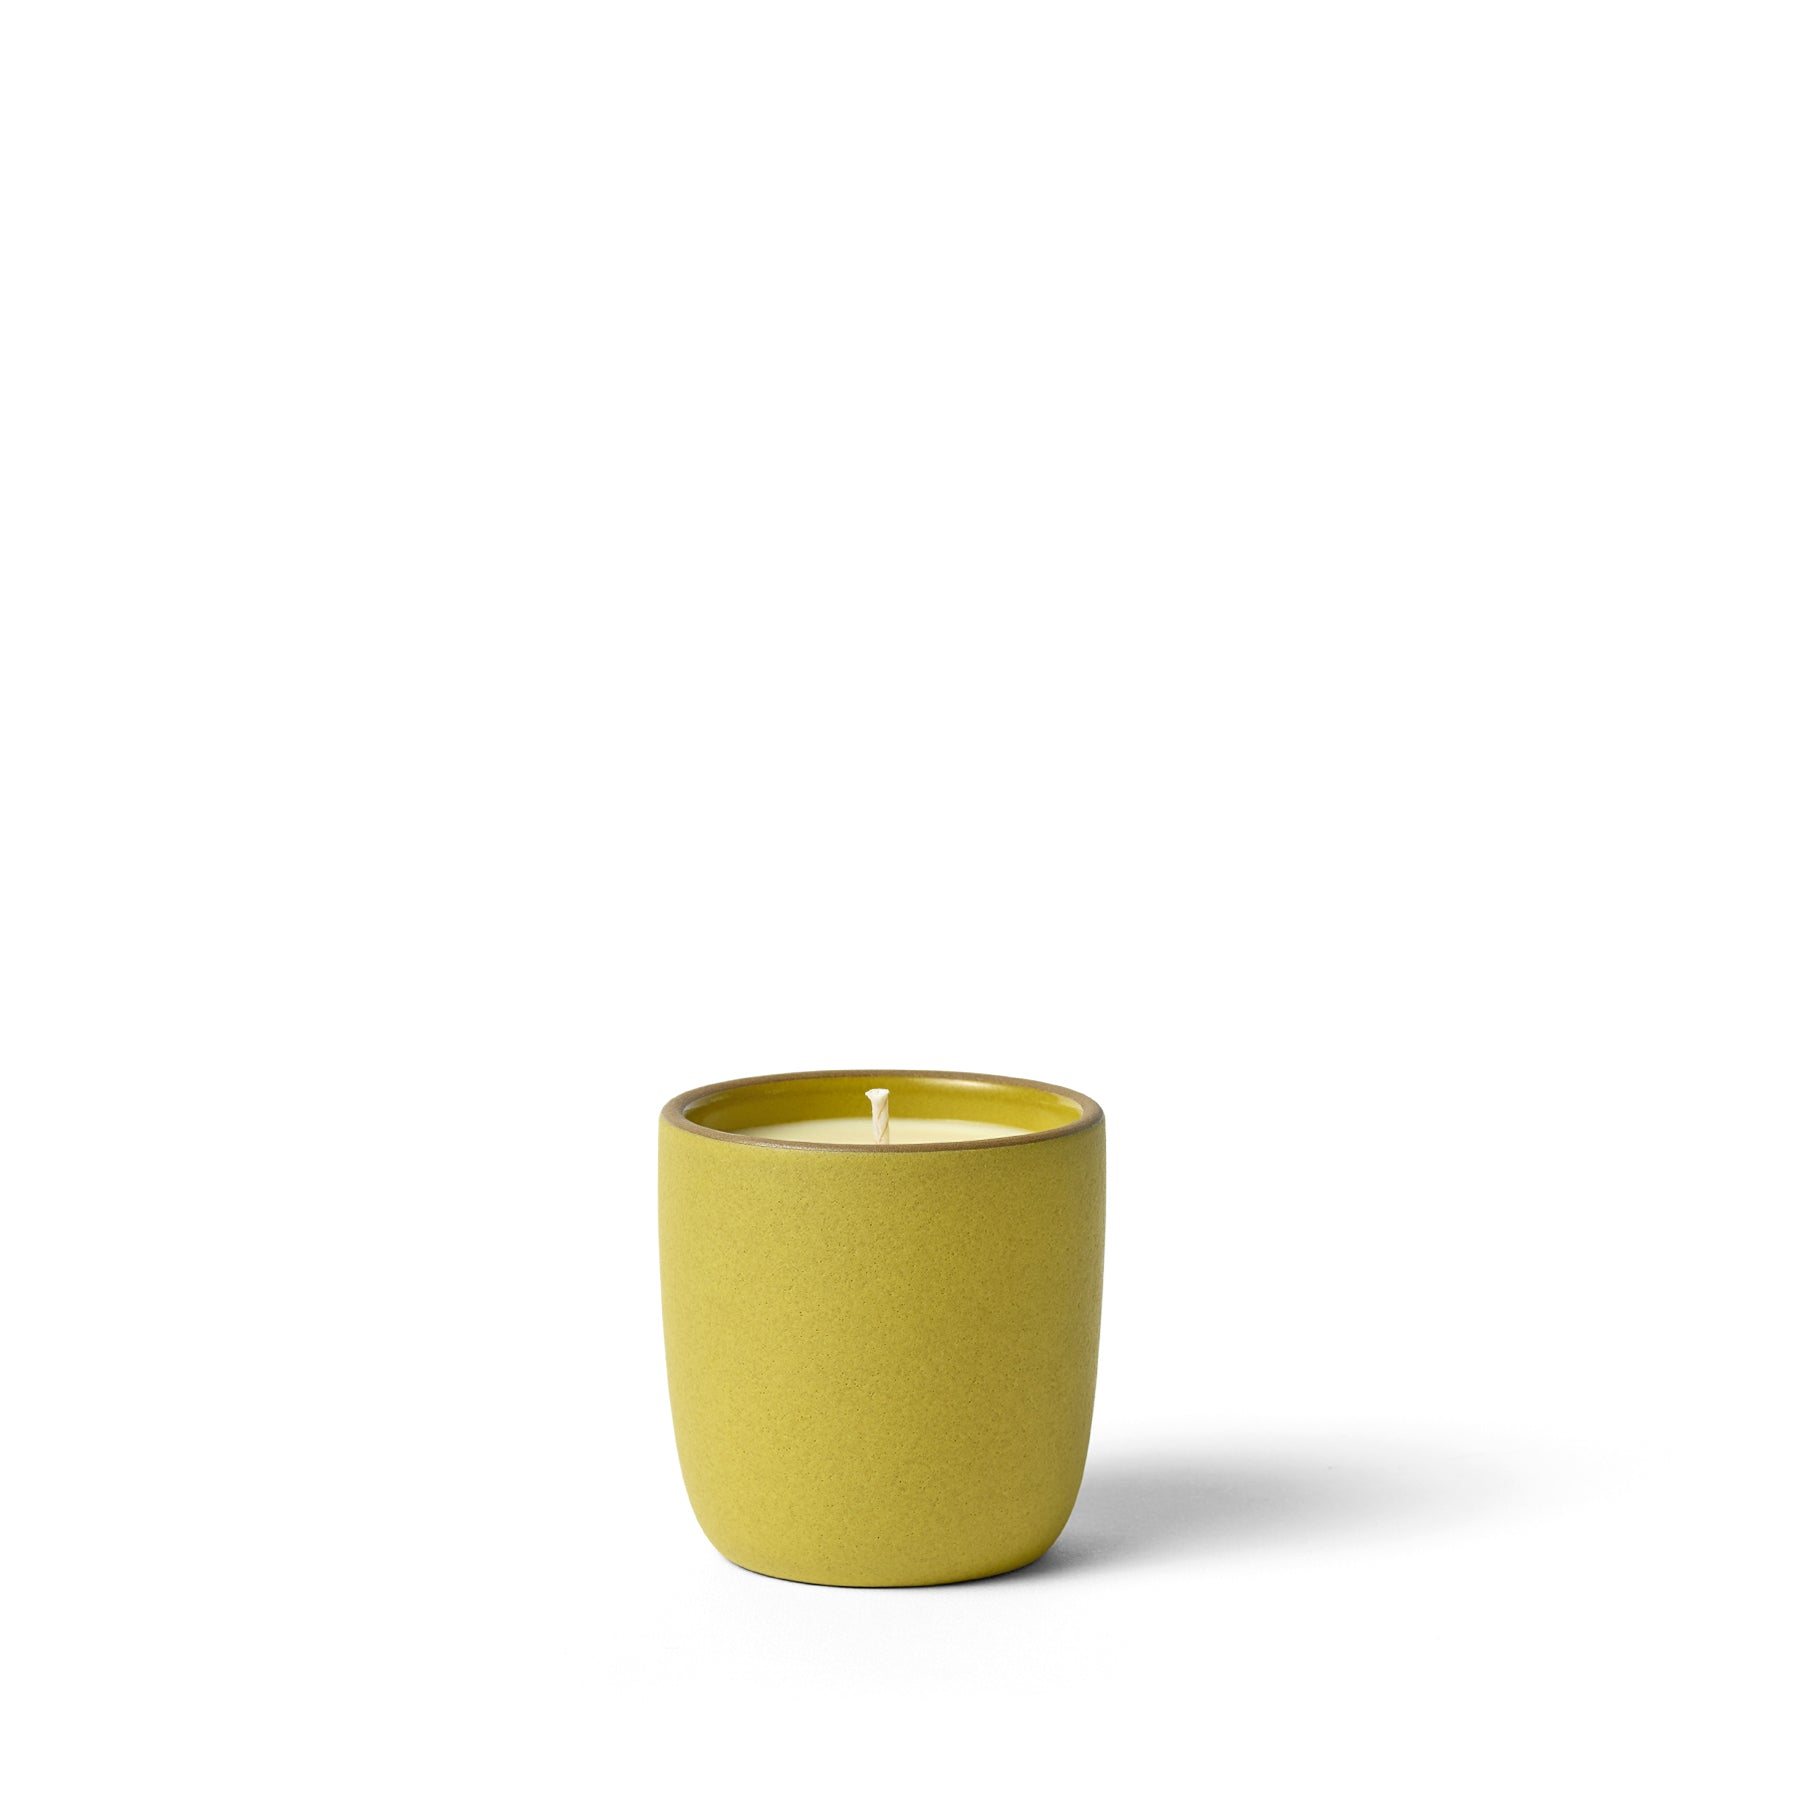 Clary Sage and Lemon Candle in Canary Zoom Image 1